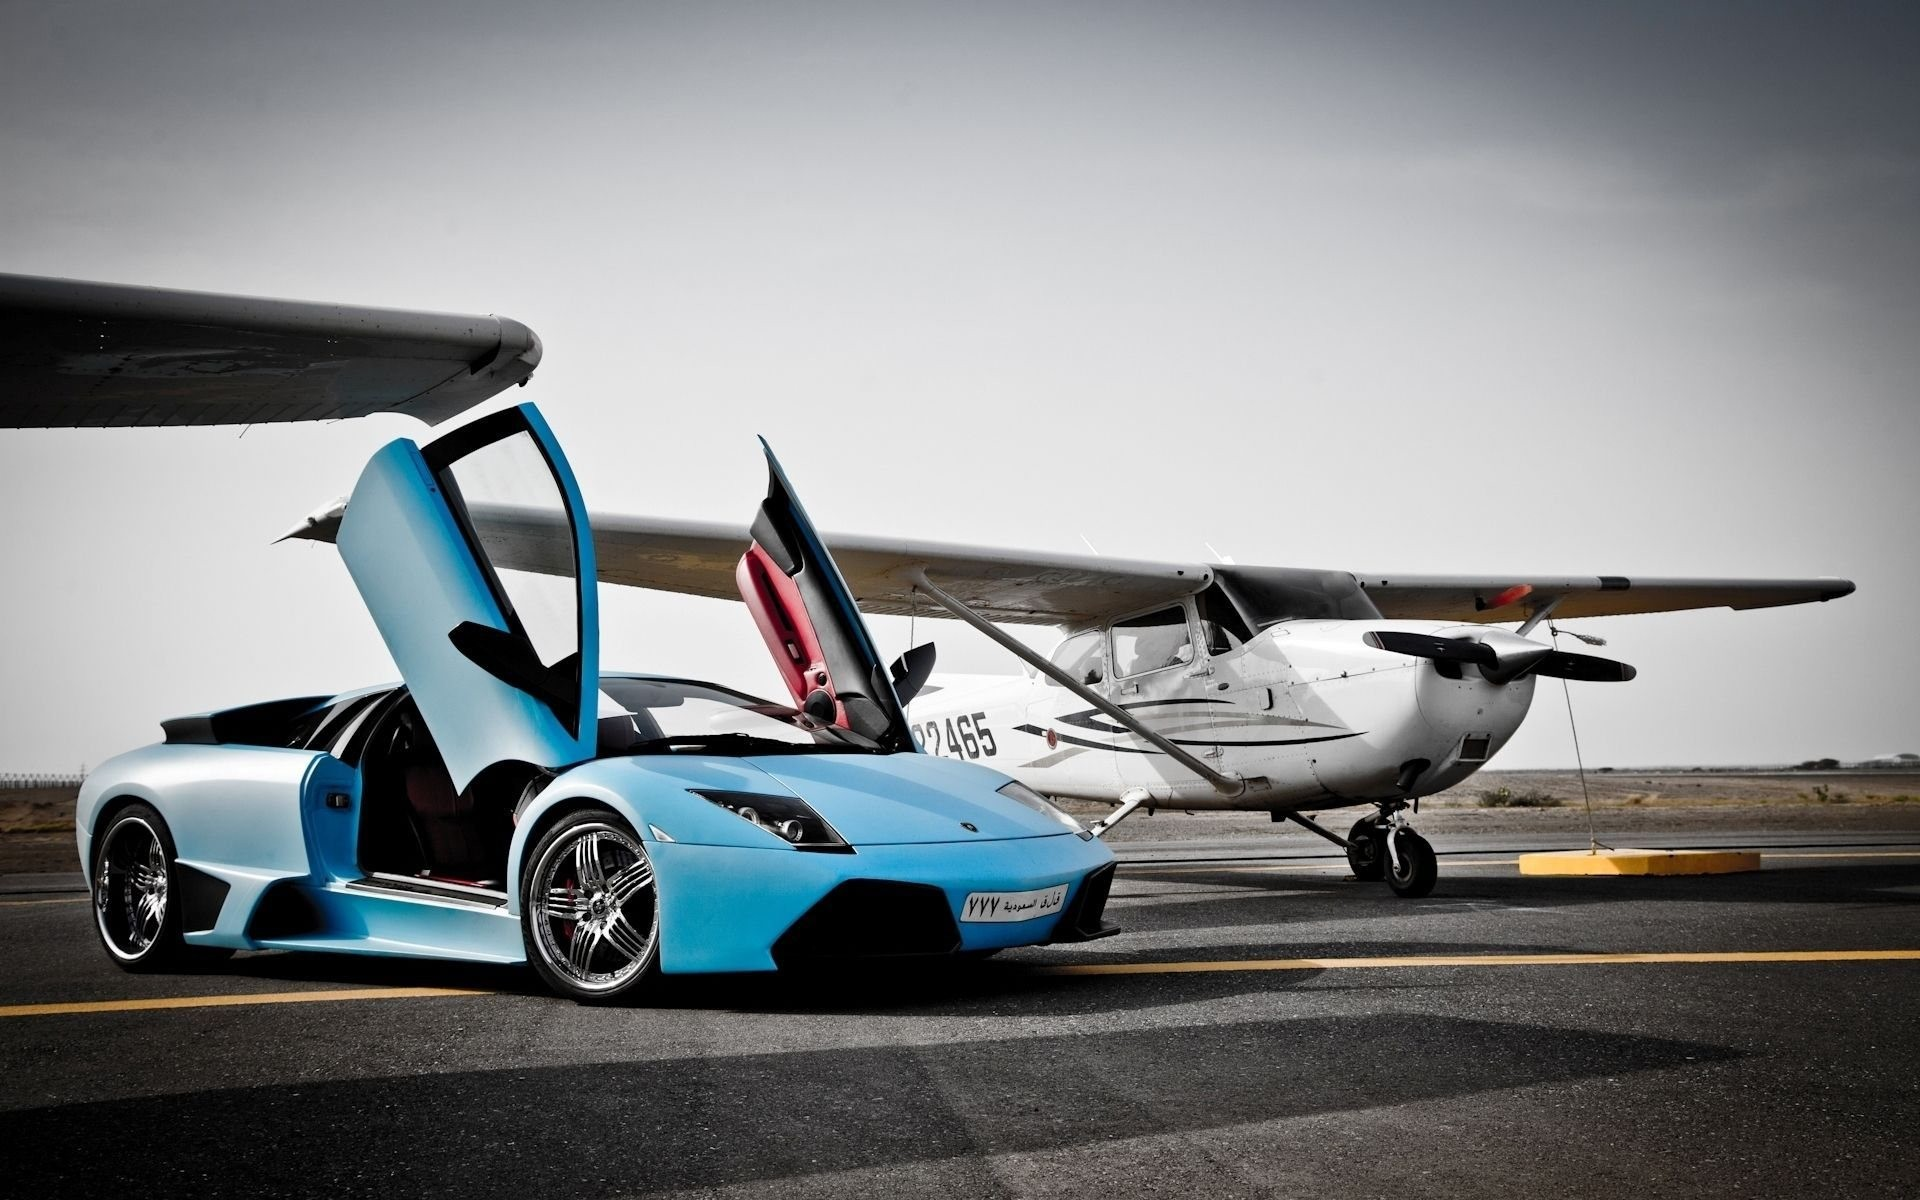 x 1200 original wallpaper lamborghini murcielago vs plane downloads 7768 - Lamborghini Gallardo Wallpaper Blue